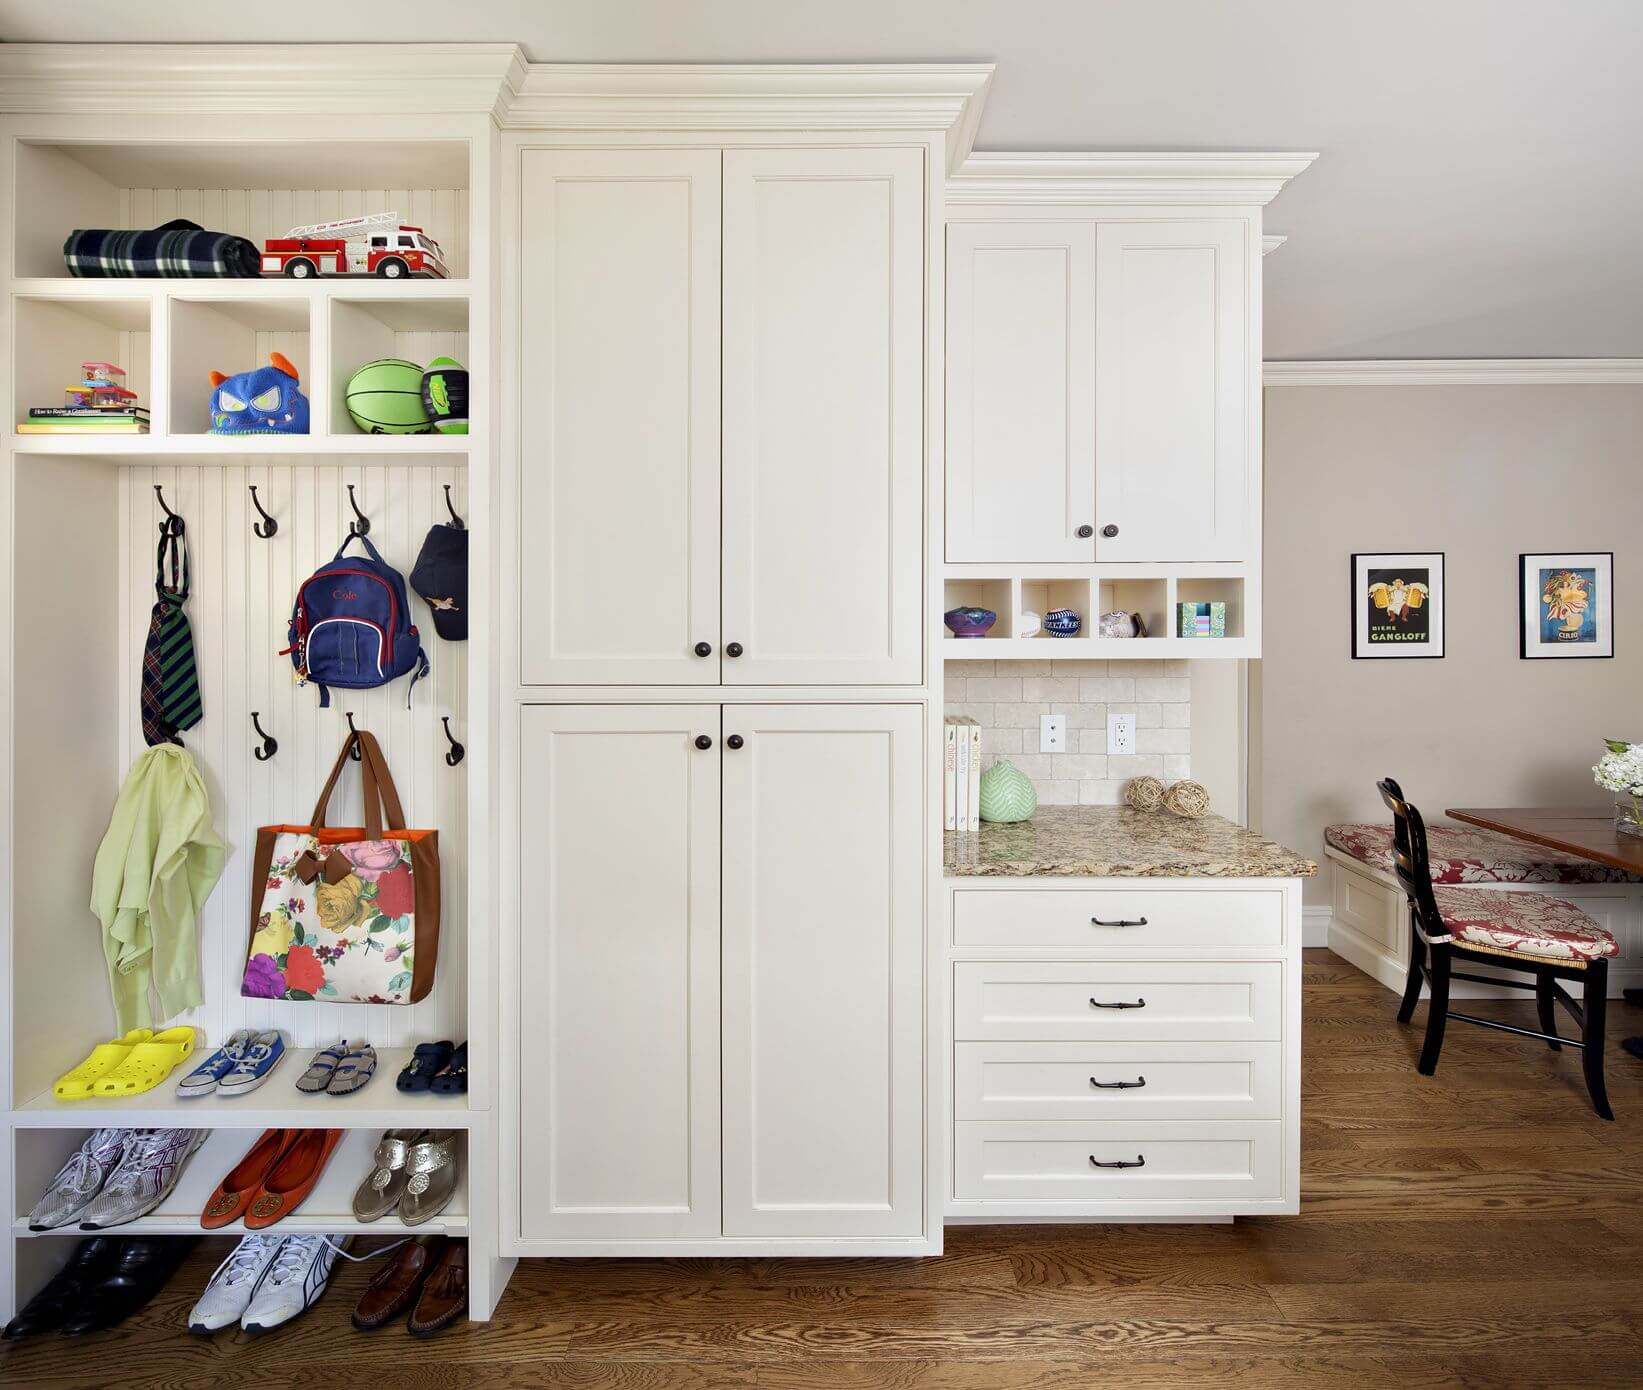 Storage Solutions: An IKEA Mudroom